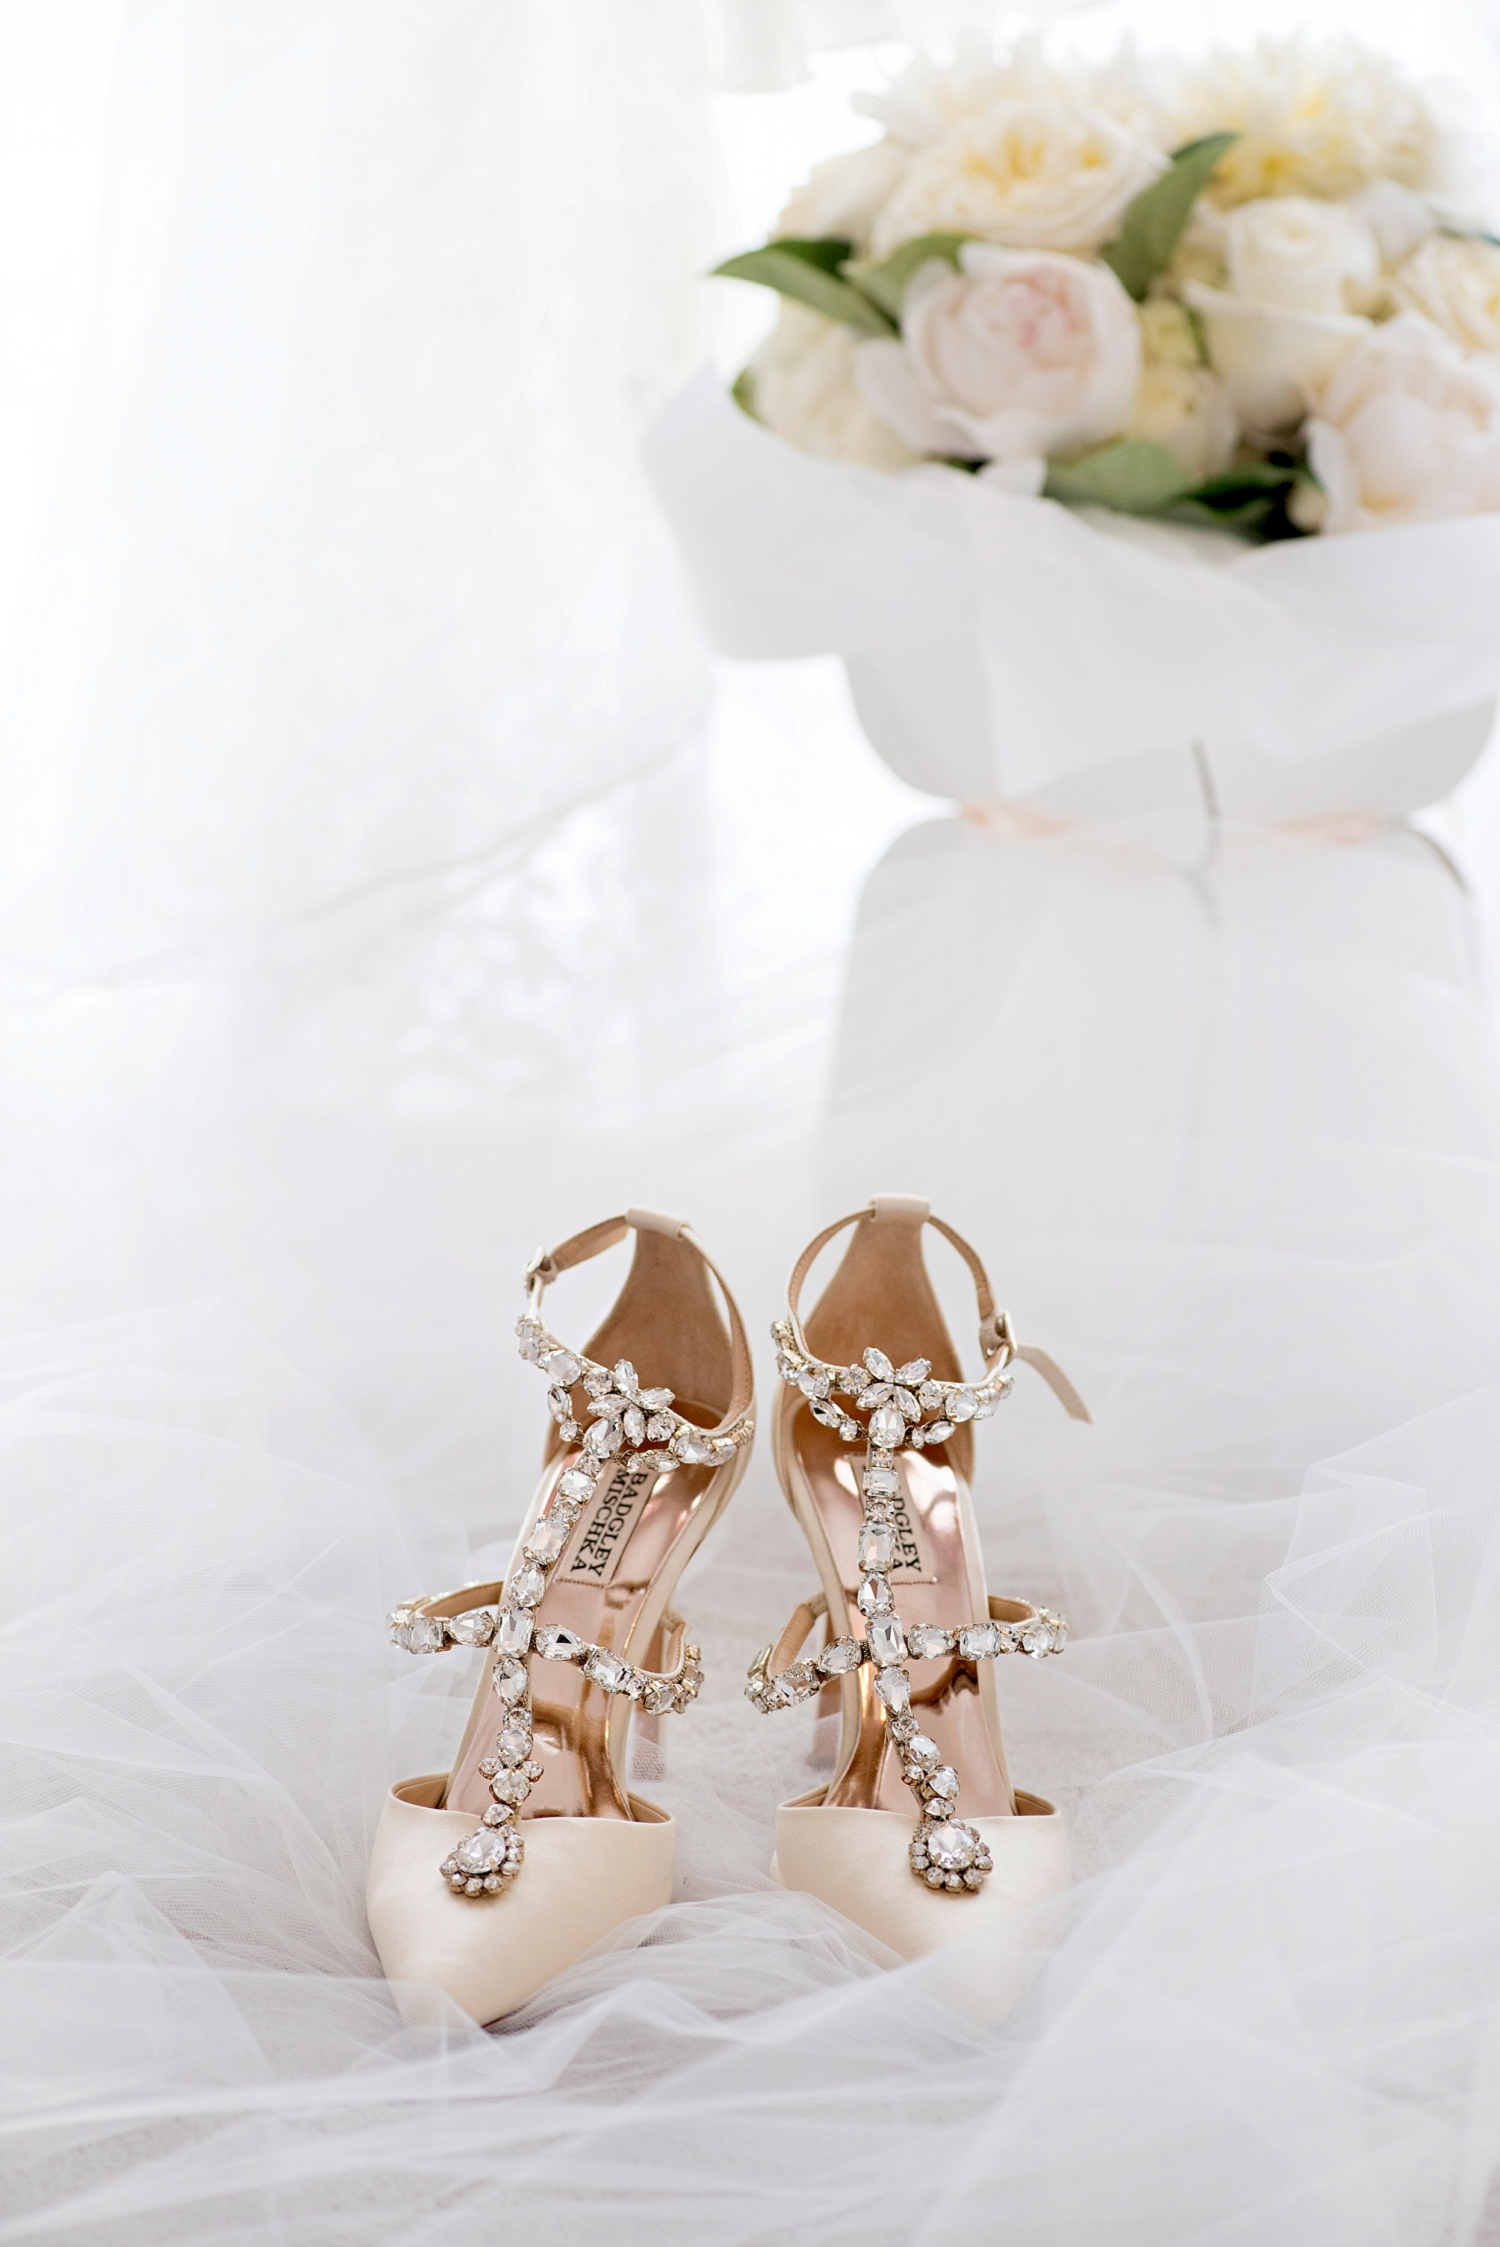 07_badgley mischka wedding shoes perth.jpg